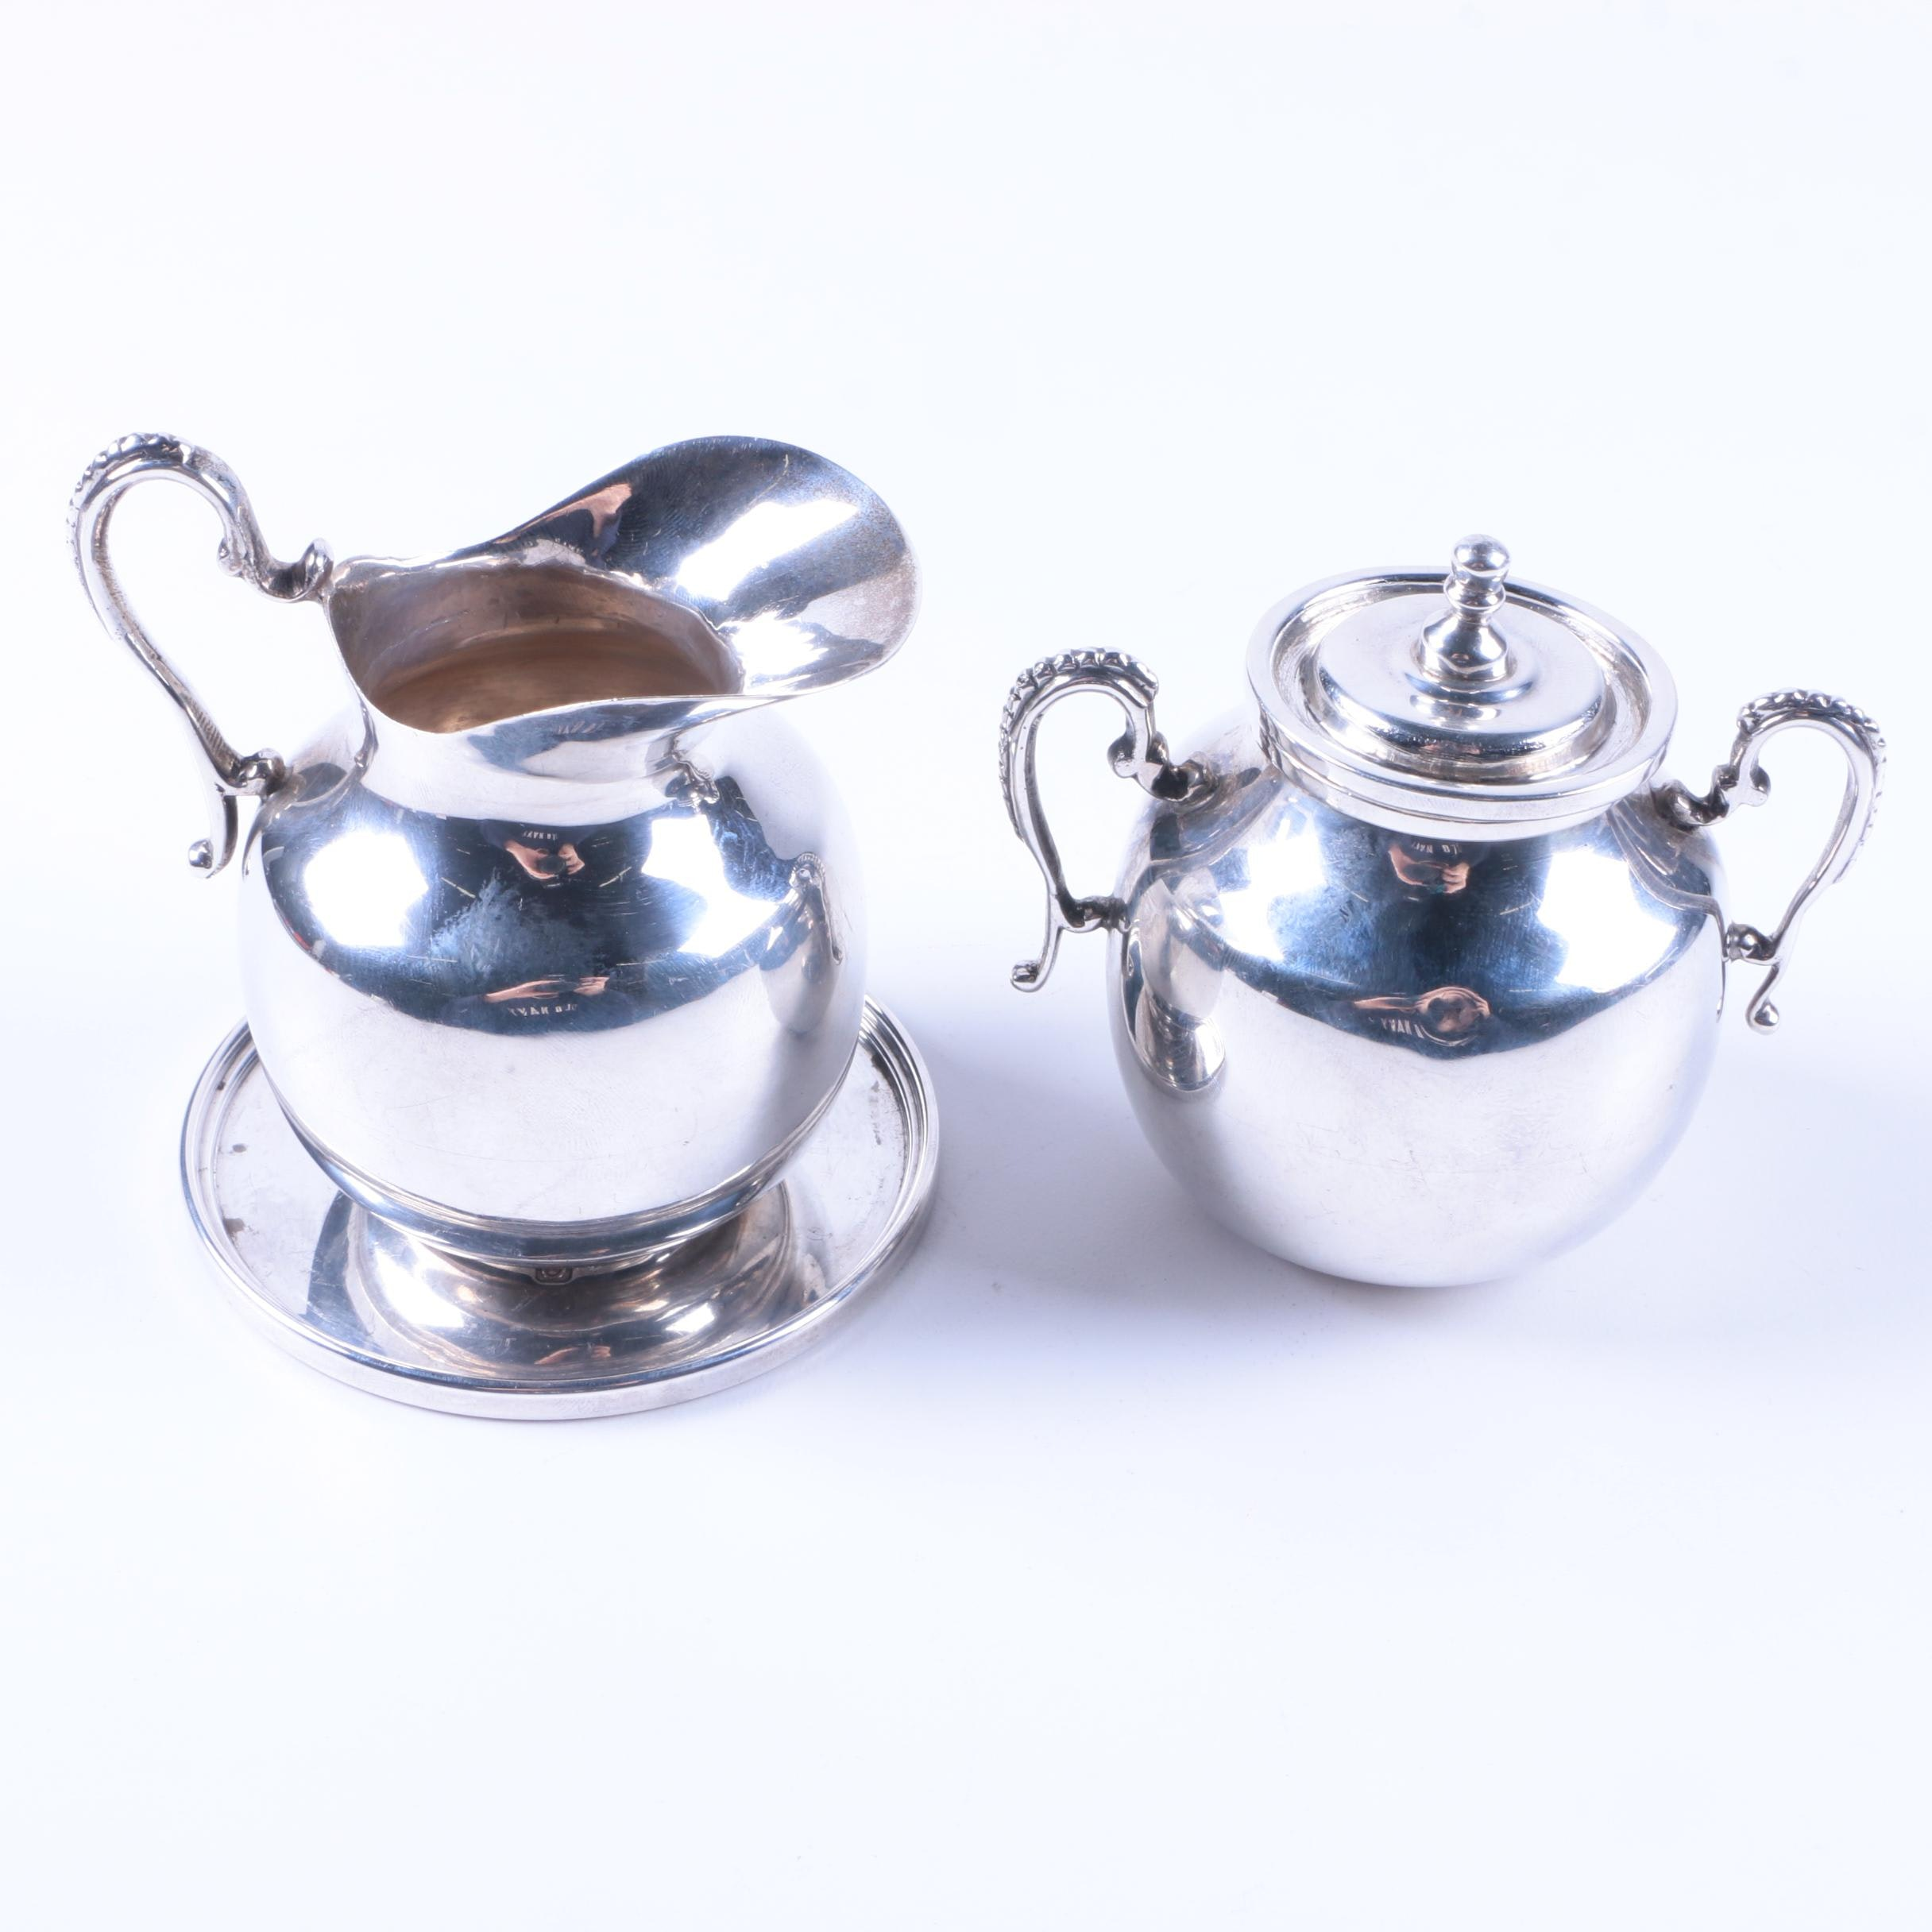 1988 Asprey & Co. Sterling Coaster with Mexican Sterling Creamer and Sugar Bowl